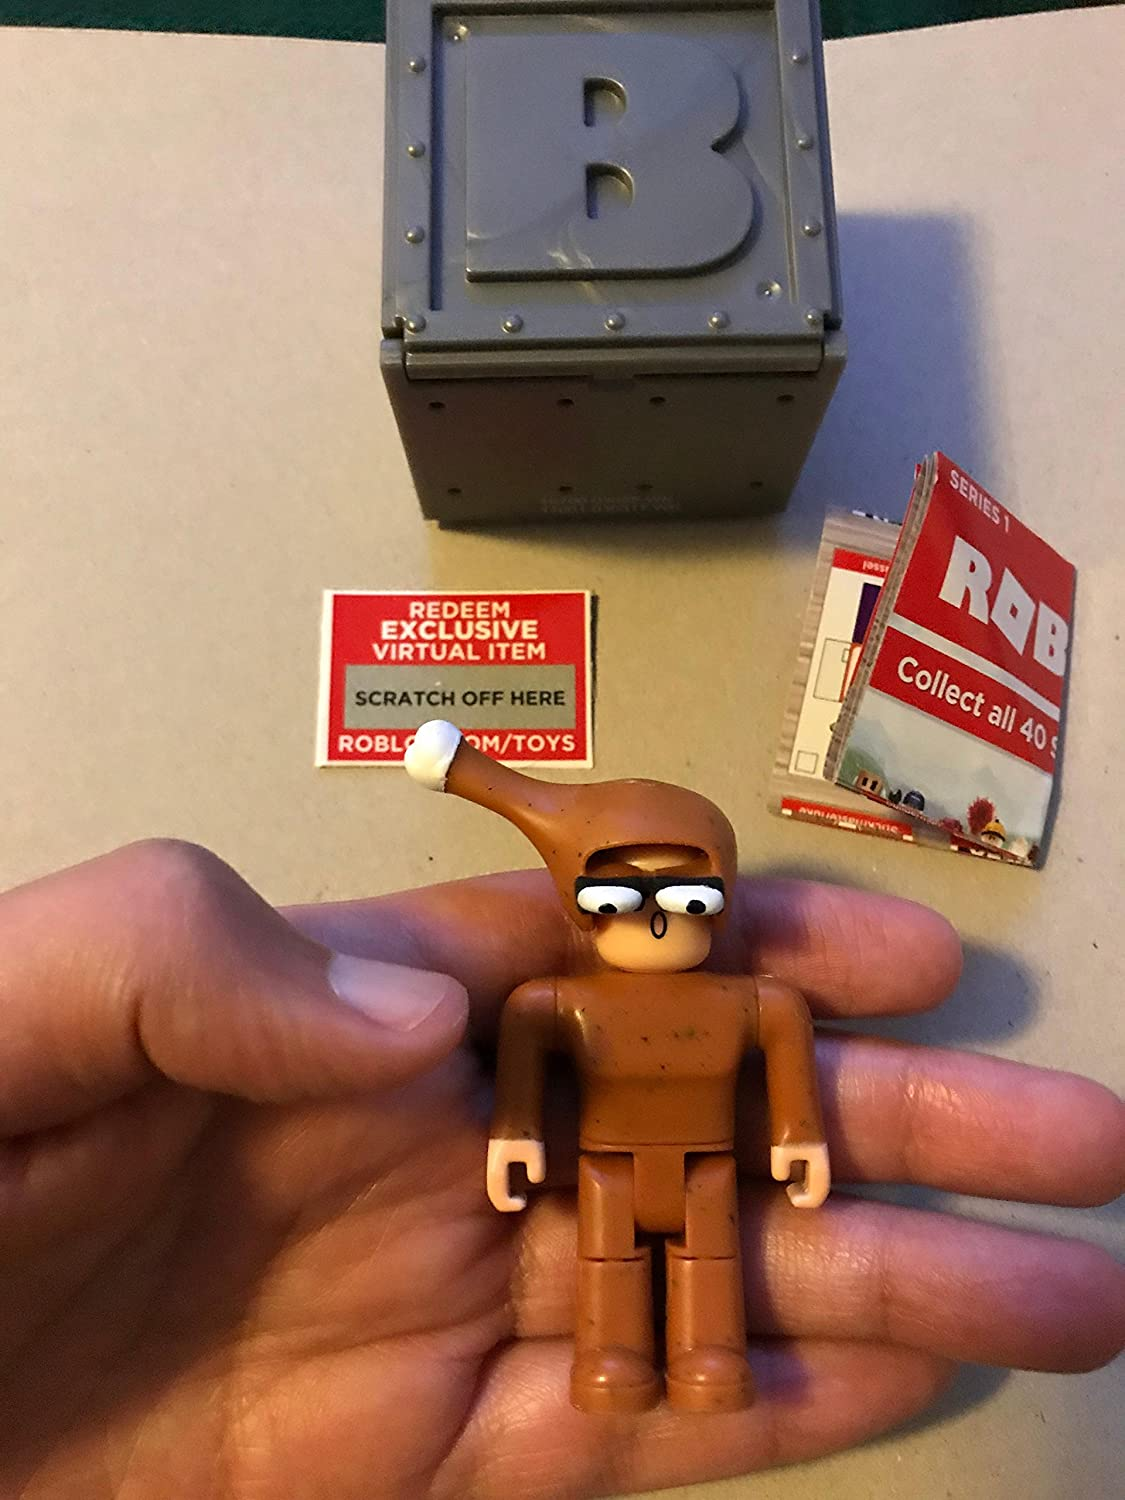 Roblox Series 1 Action Figures Complete Reference Guide Roblox Roblox Series 1 Chicken Man Action Figure Mystery Box Virtual Item Code 2 5 Figures Amazon Canada